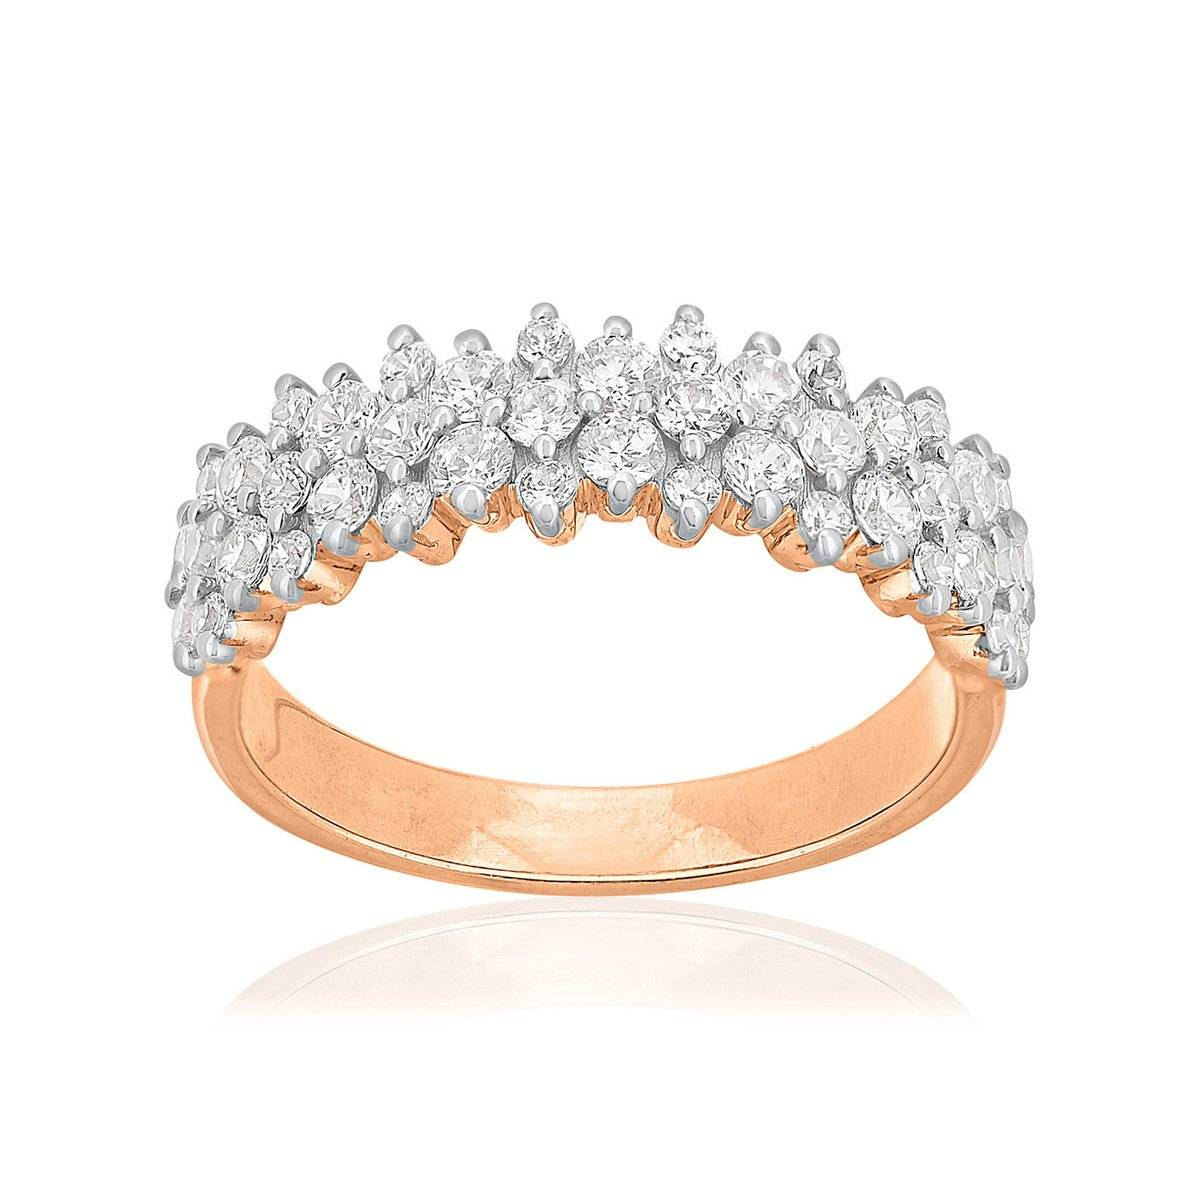 MATY Bague or 750 rose 2 tons diamants synthétiques 0,95 carat- MATY